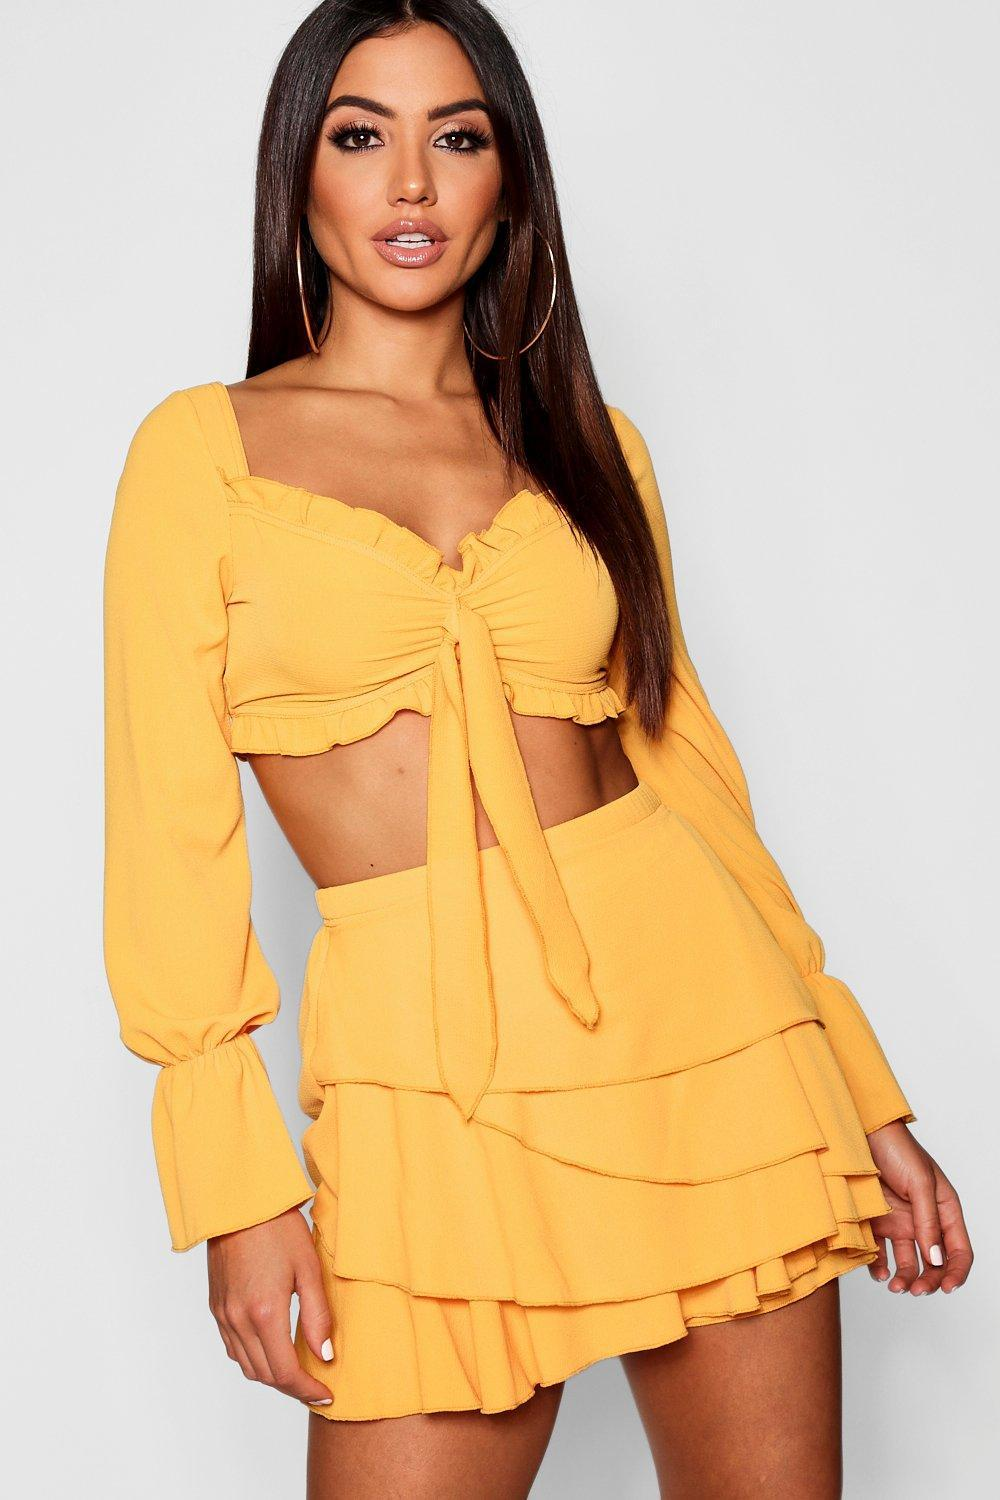 e3874941463f5 Lyst - Boohoo Long Sleeve Tie Front + Ruffle Detail Short Co-ord